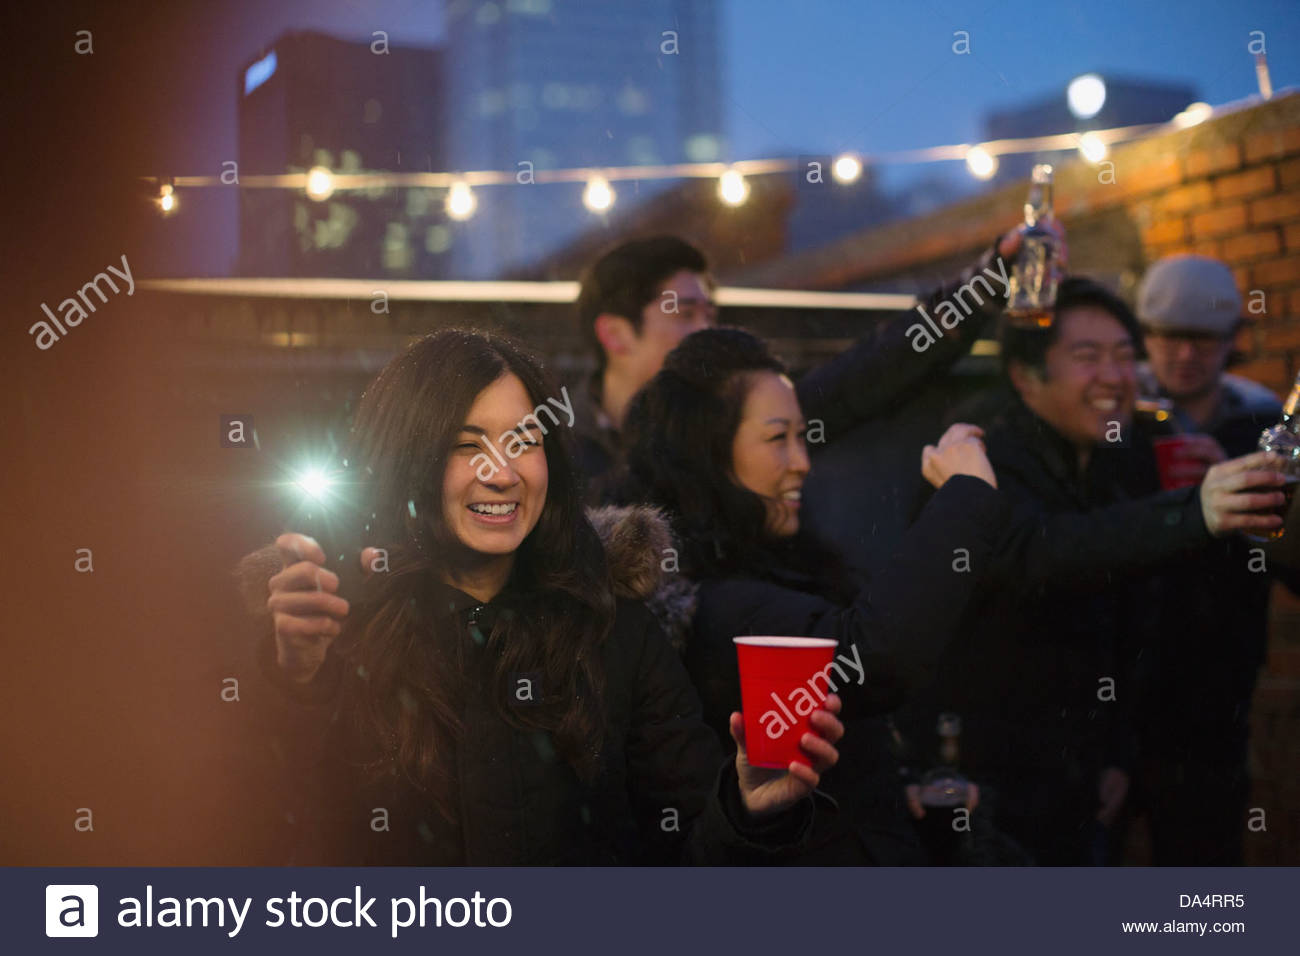 Group of entrepreneurs celebrating on rooftop - Stock Image